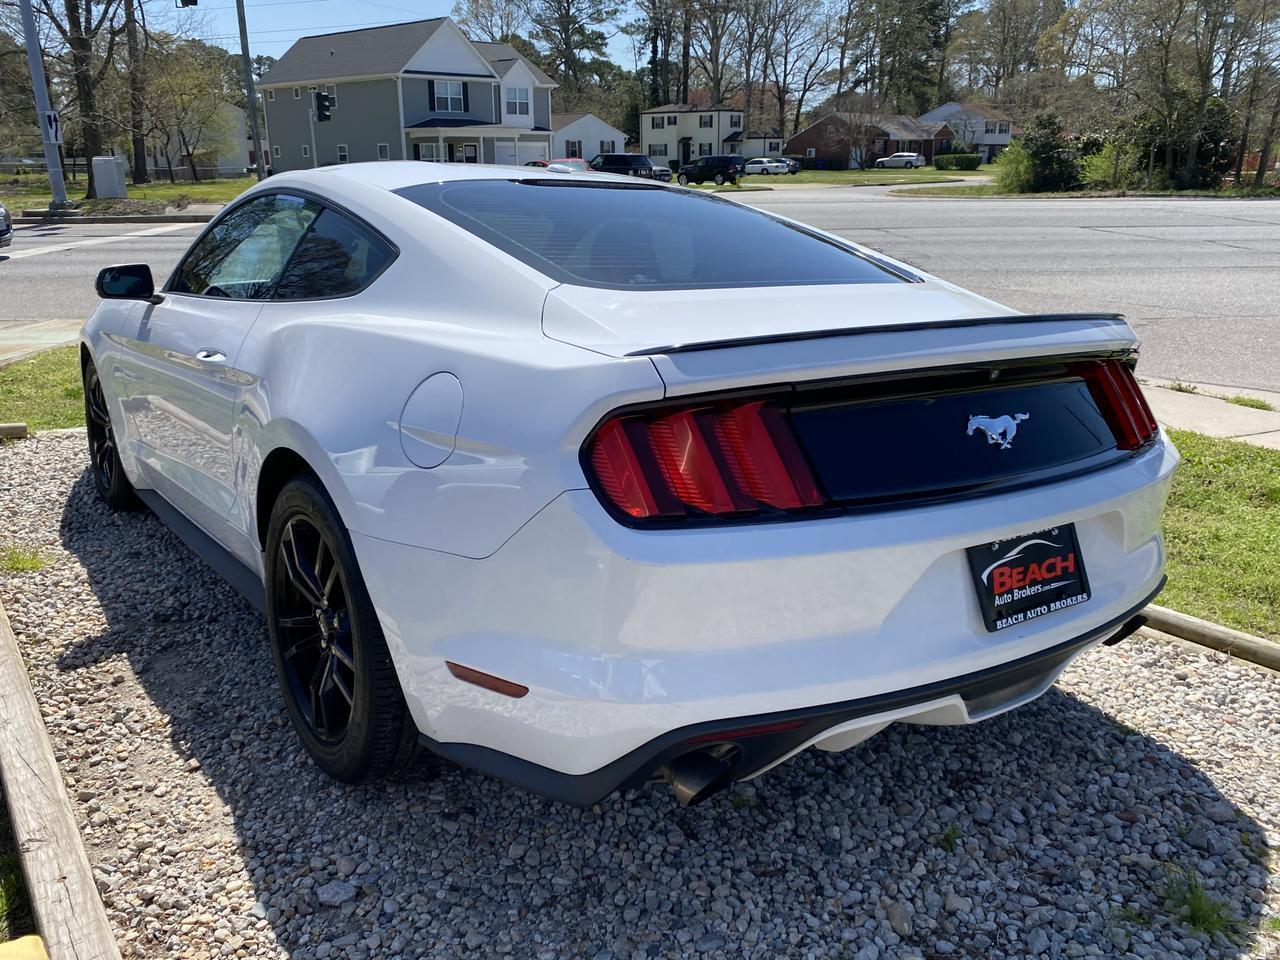 2015 FORD MUSTANG ECOBOOST PREMIUM, WARRANTY, LEATHER, HEATED/COOLED SEATS, BACKUP CAM, PARKING SENSORS, CLEAN! Norfolk VA